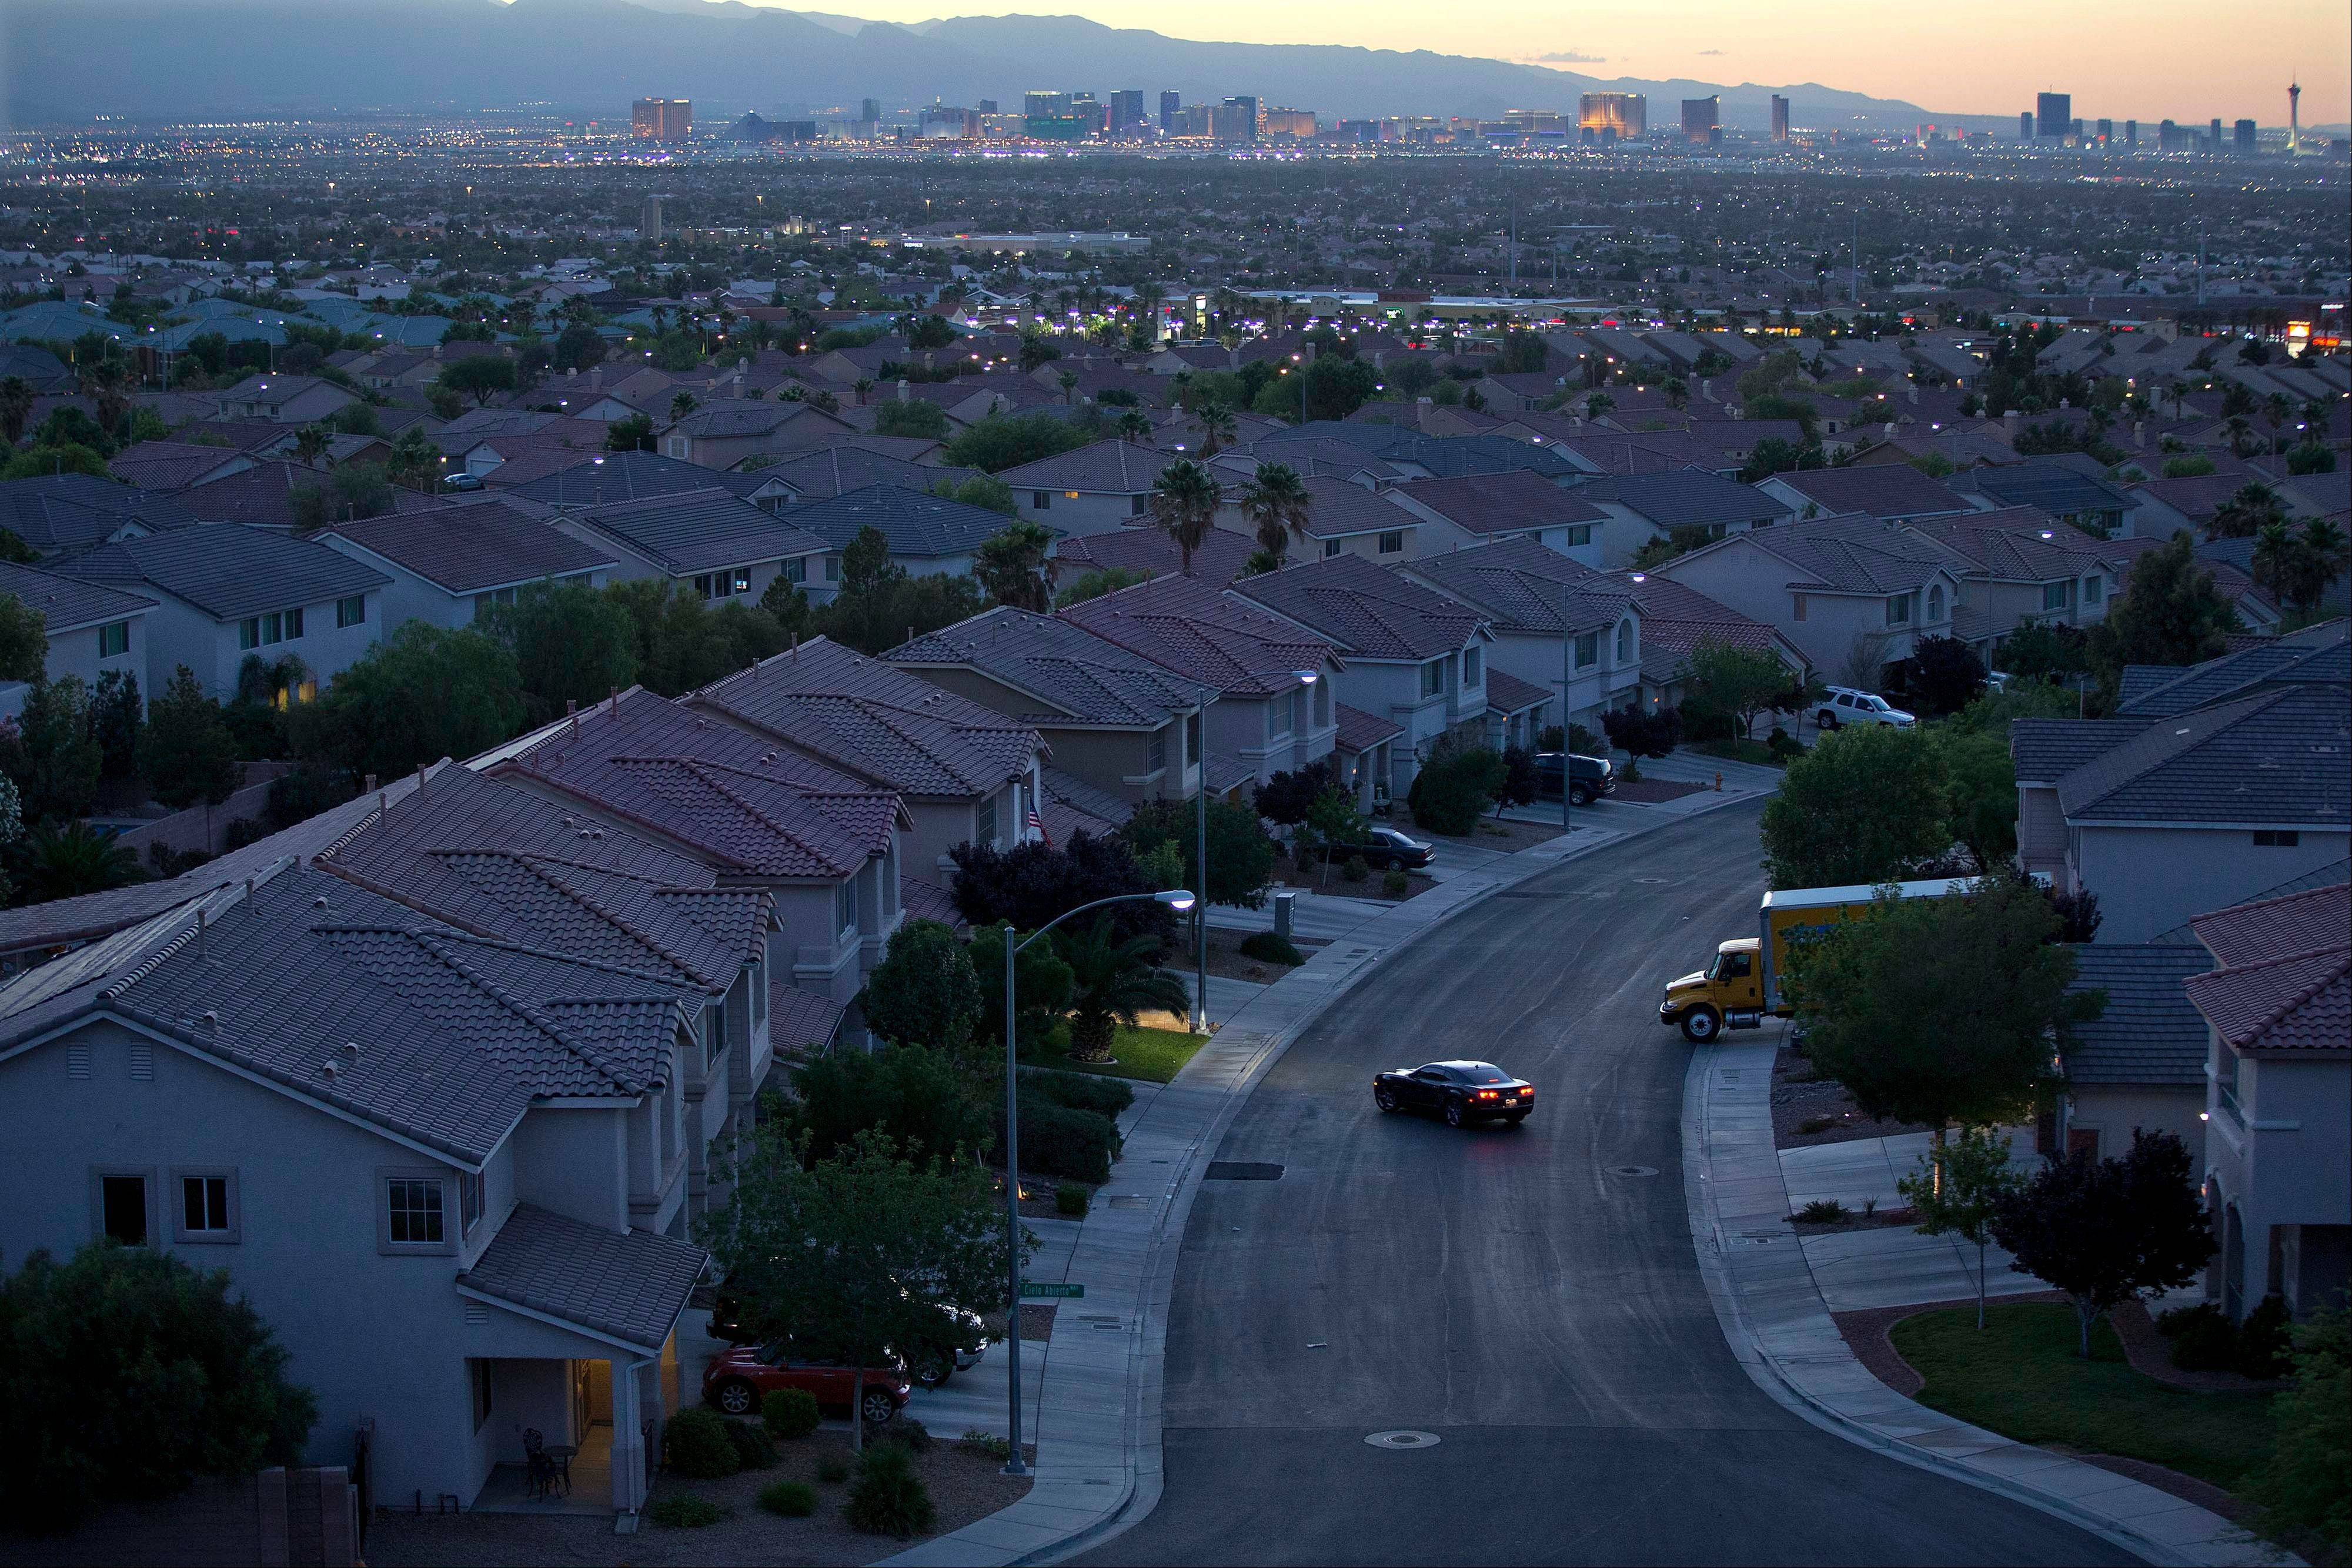 A motorist pulls into the driveway in a neighborhood in Henderson, Nev. U.S. mortgage rates declined this week, with the average on the 30-year fixed loan remaining just under 4 percent. But rates likely will surge next week now that Chairman Ben Bernanke said the Federal Reserve is likely to reduce its bond purchases later this year.